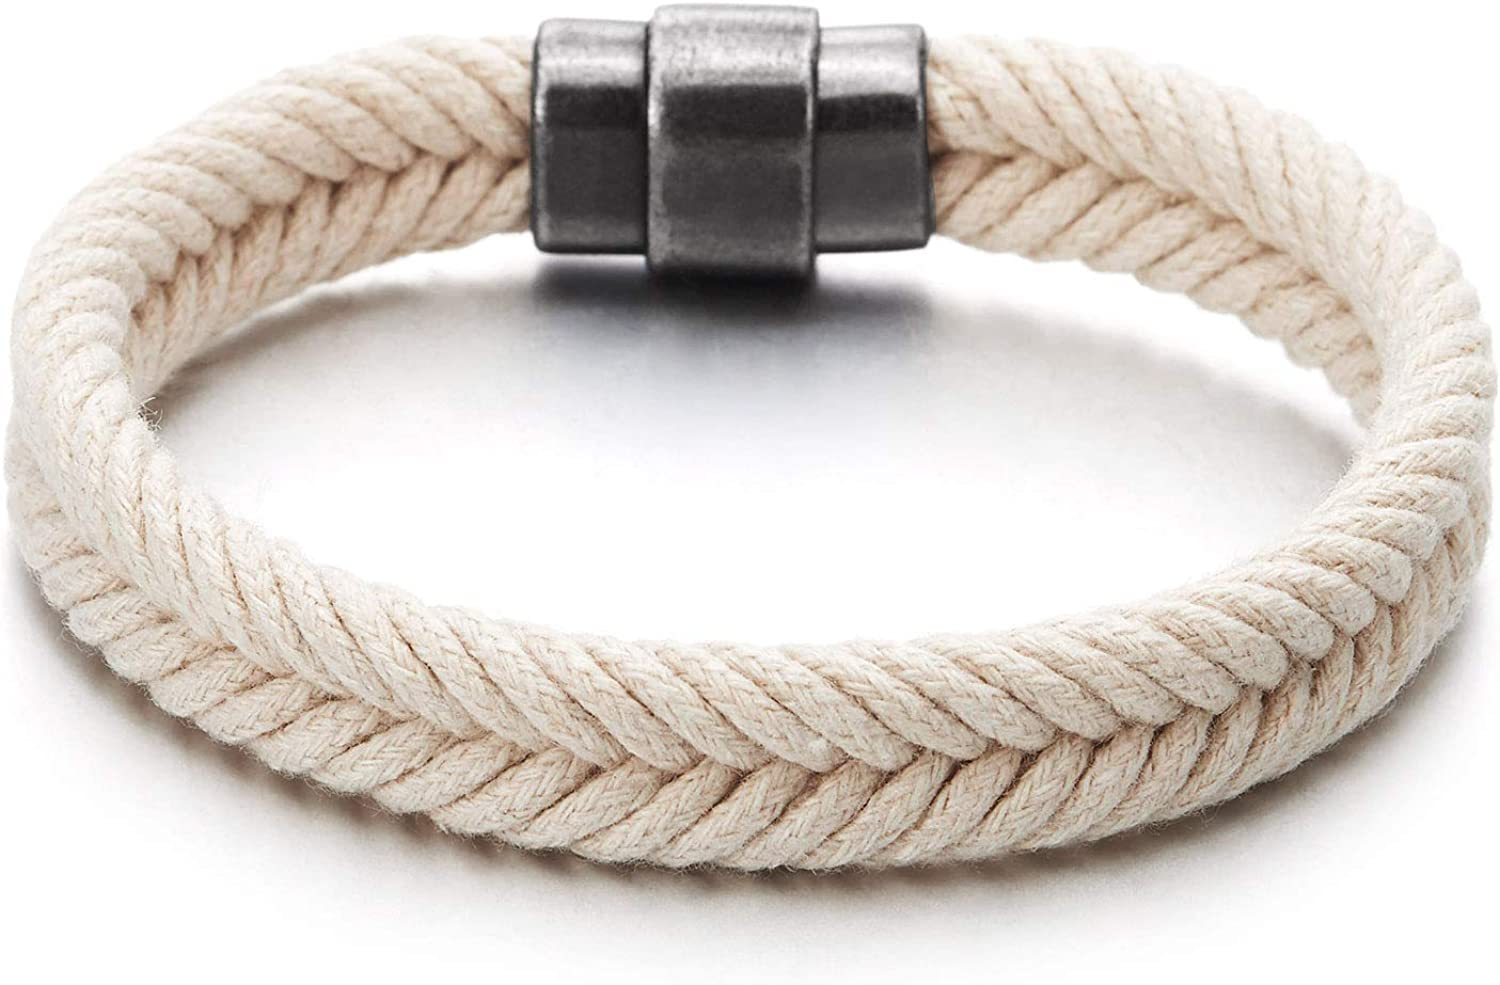 COOLSTEELANDBEYOND Mens Womens White Braided Cotton Rope Bangle Bracelet with Magnetic Clasp, Summer Accessories